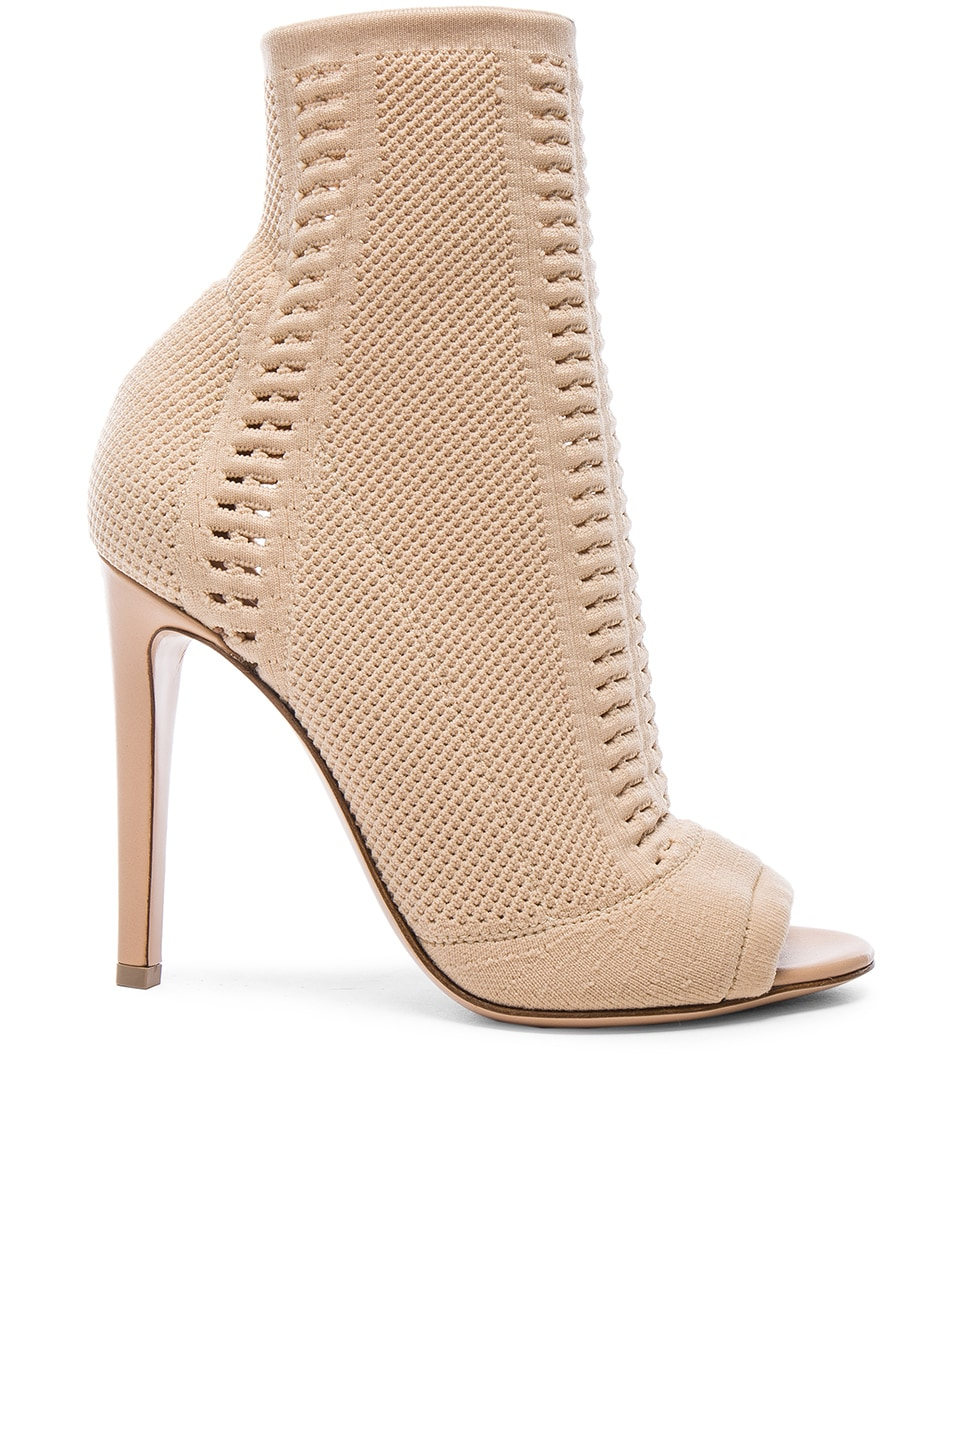 Image 1 of Gianvito Rossi Knit Booties in Nude